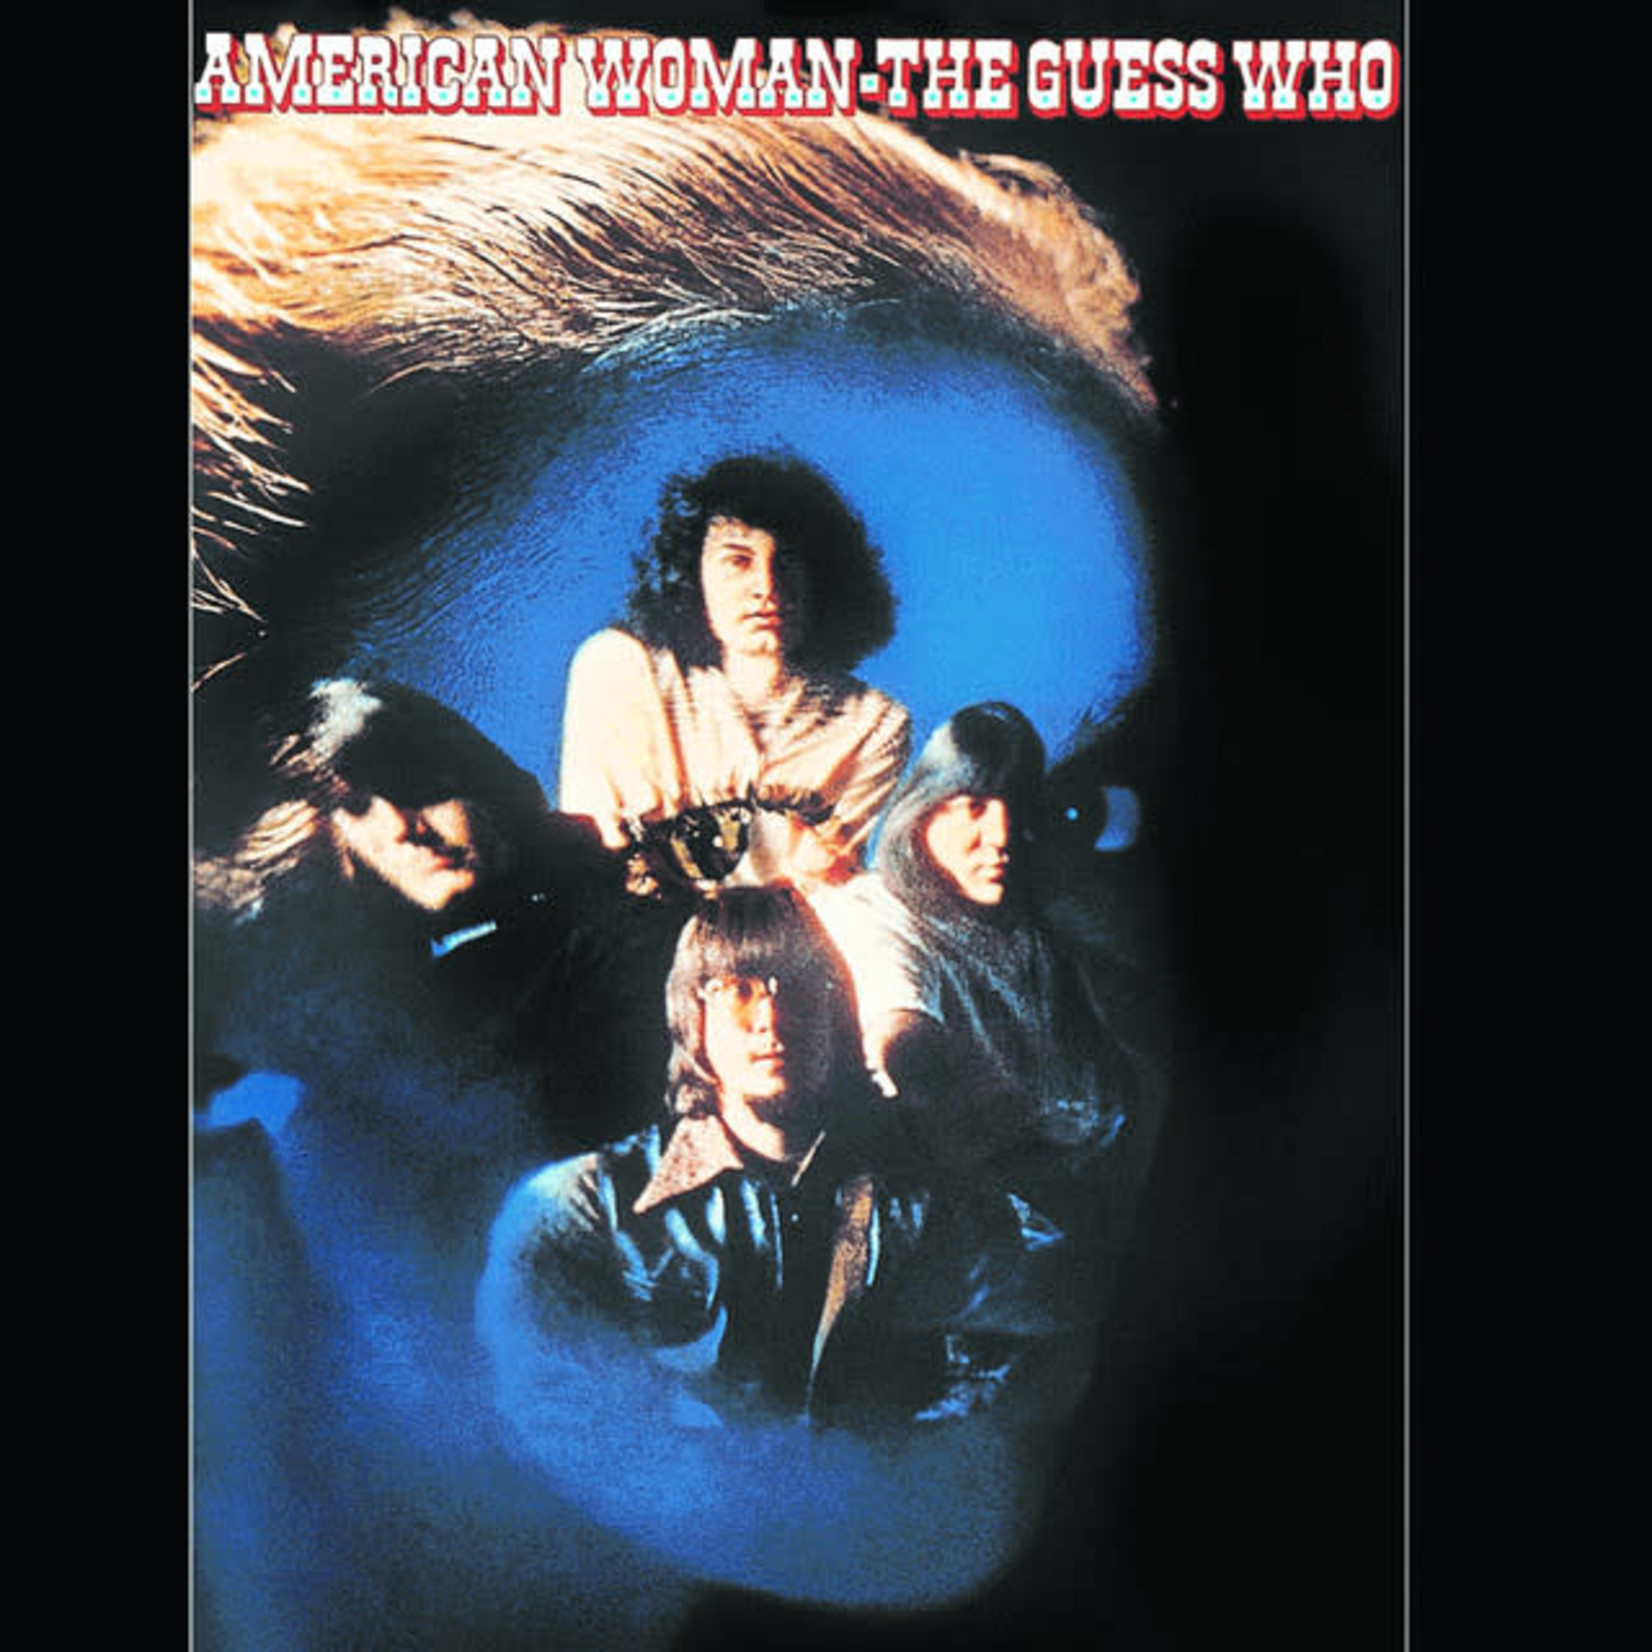 Vinyl The Guess Who - American Woman